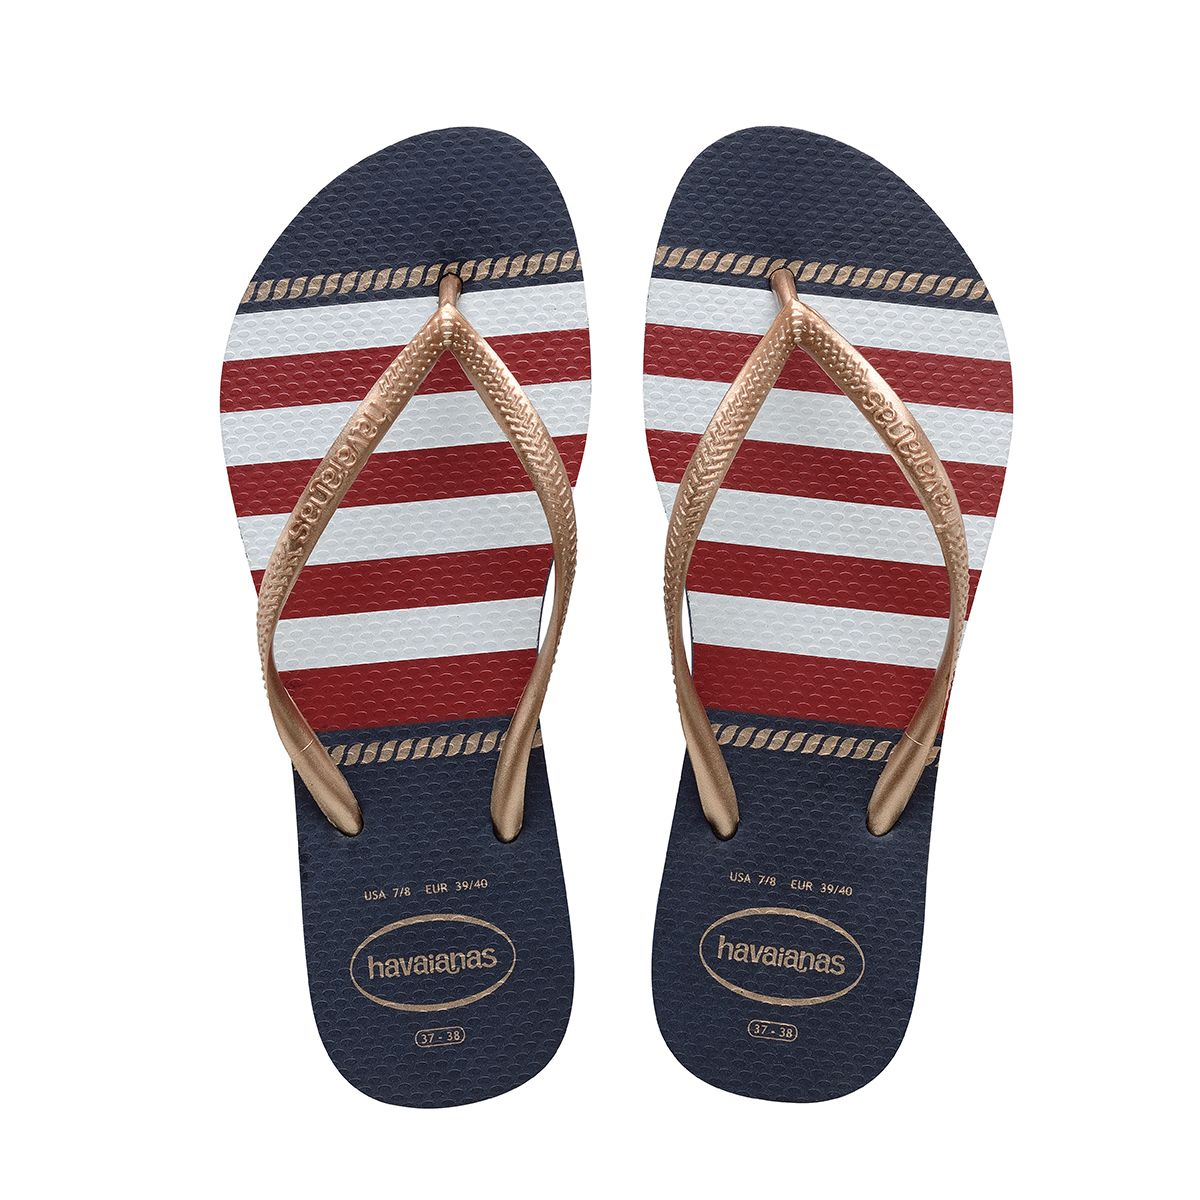 Hoist the anchor & set sail in the Women's Slim Nautical Flip Flop Sandal.  Featuring classic nautical motifs in red, white, & navy blue.